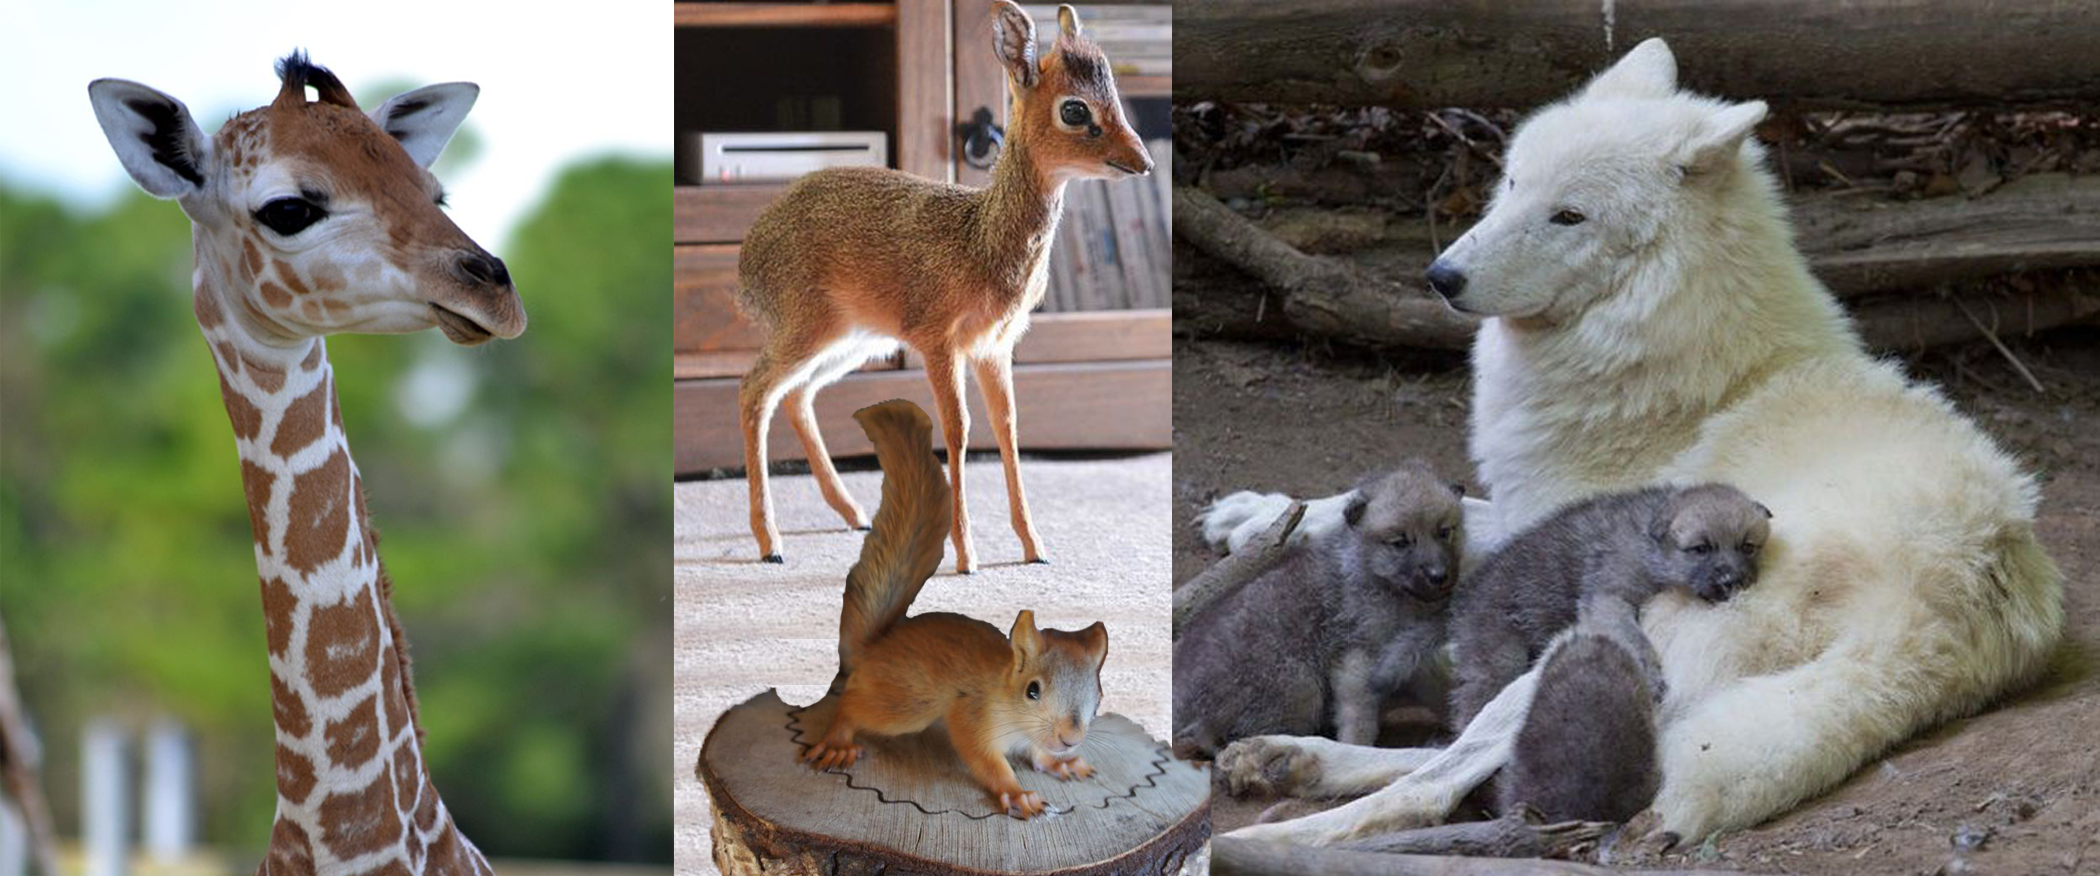 Animal Cast 1.png